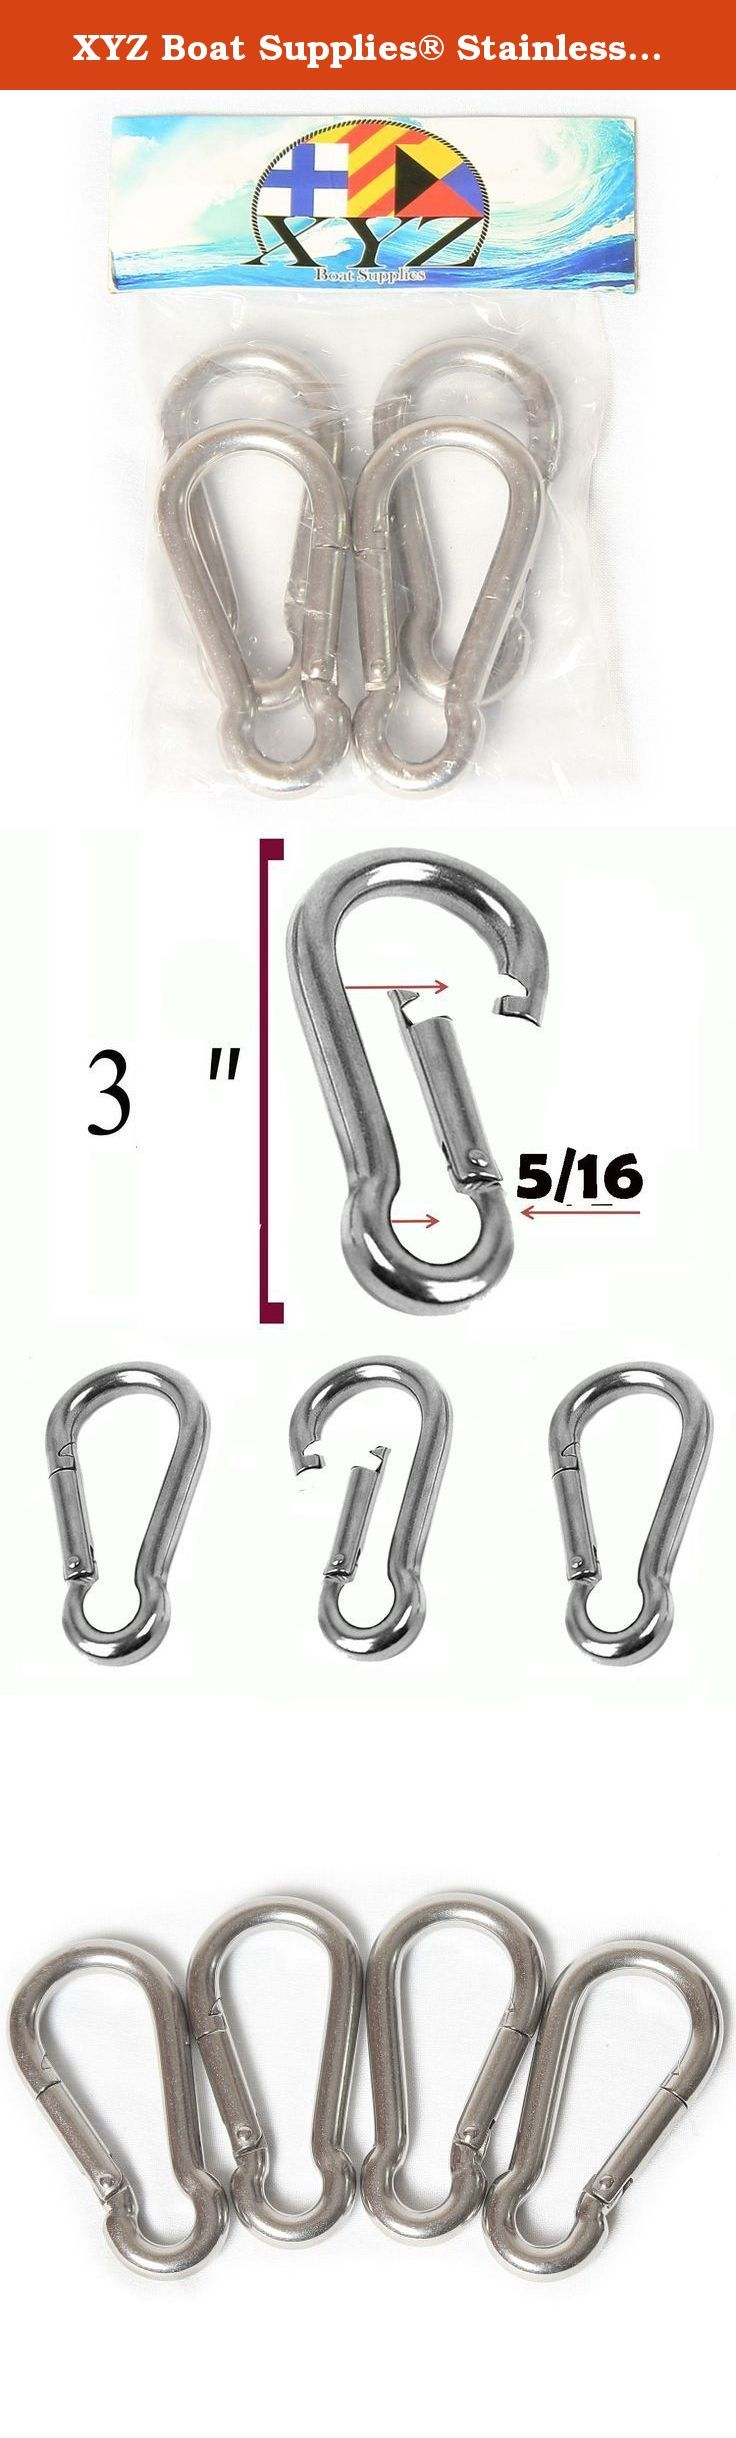 XYZ Boat Supplies® Stainless Steel 316, Spring Snap Hook, Carabiner, Set Of 4 (5/16). XYZ Boat Supplies 316 Stainless Steel Carabiner pack of 4. These carabiners are made of highly anti corrosion 316 Stainless Steel allowing them to be used in salt water and outside without deterioration. Multi use item that is a must on every boat, car, RV, Motorcycle or carried camping, traveling or on any sporting adventures.